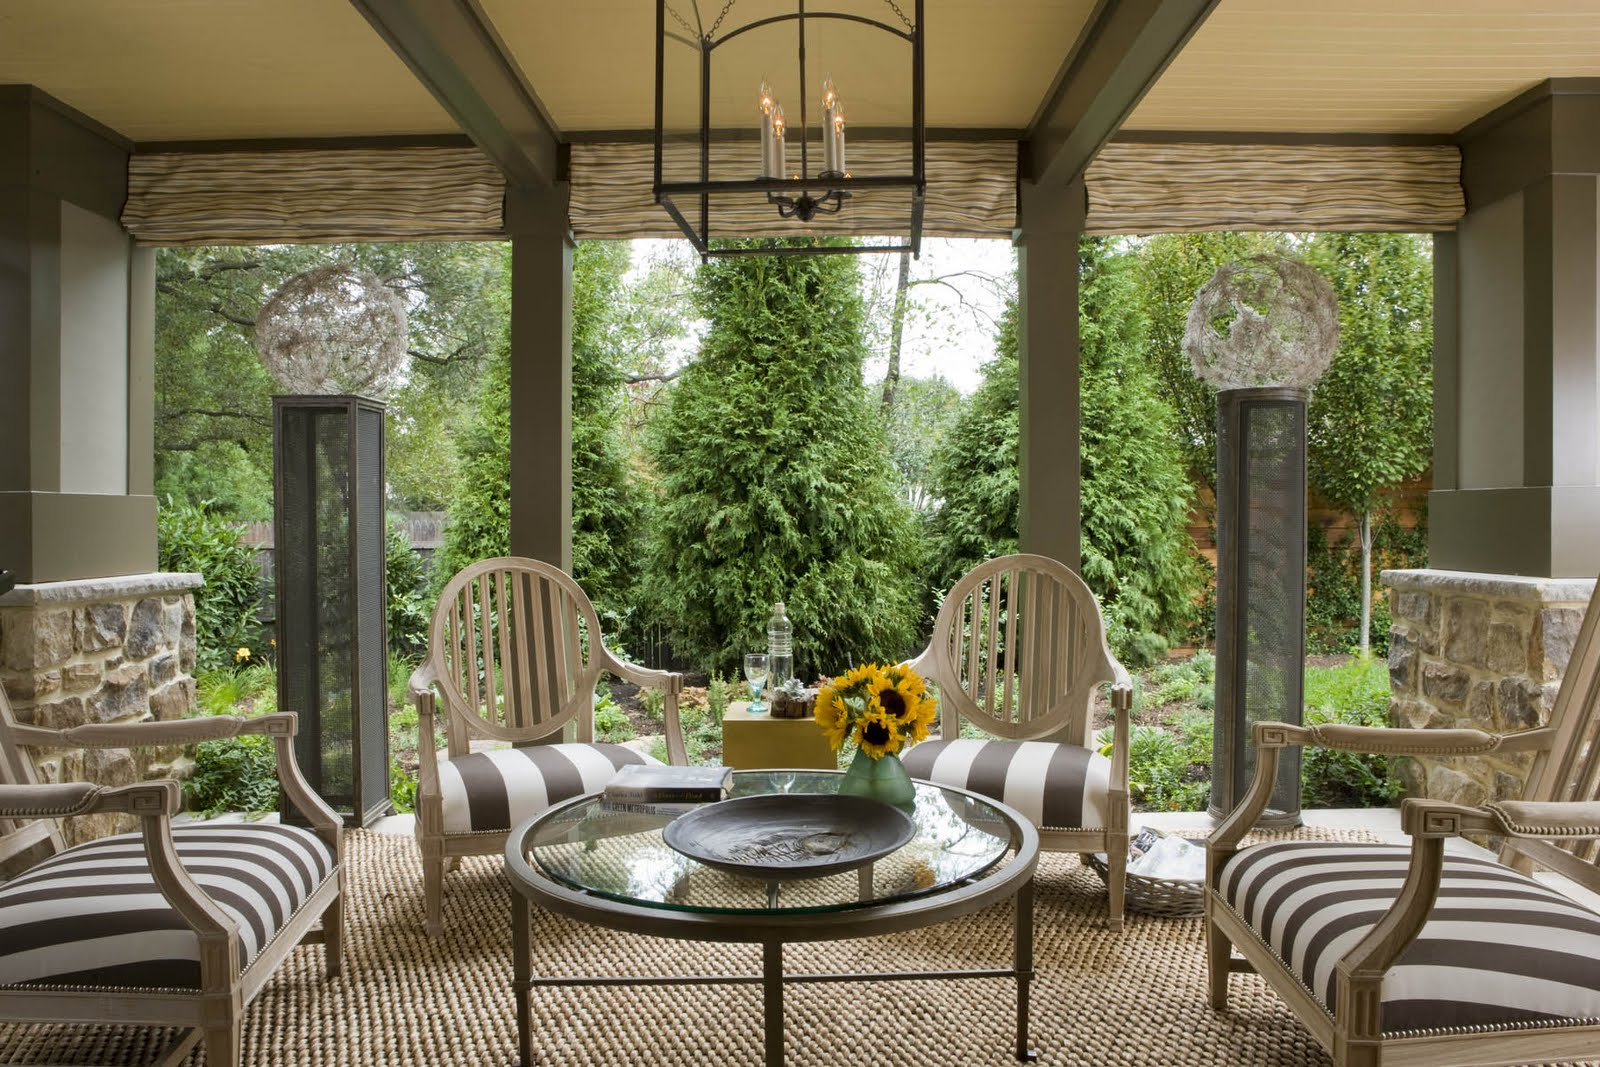 Conservatory glass house garden room inspiration for House design with garden in the middle